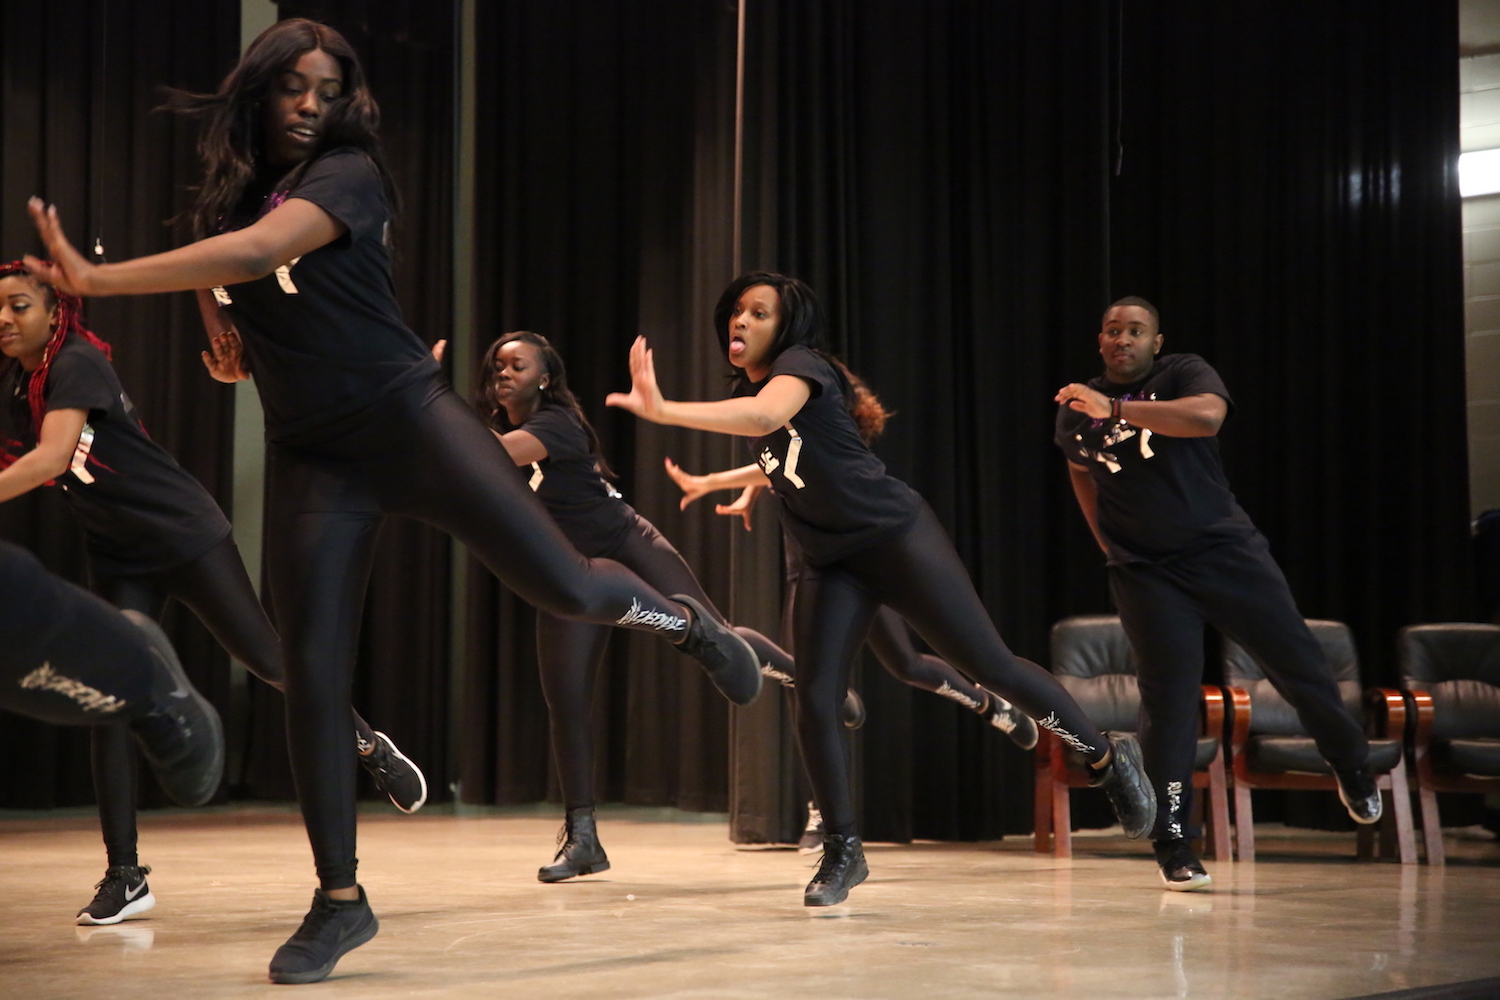 The JSU Dance Ensemble gets a kick out of electrifying the crowd in Greenville. (Photo by Spencer L. McClenty/JSU)